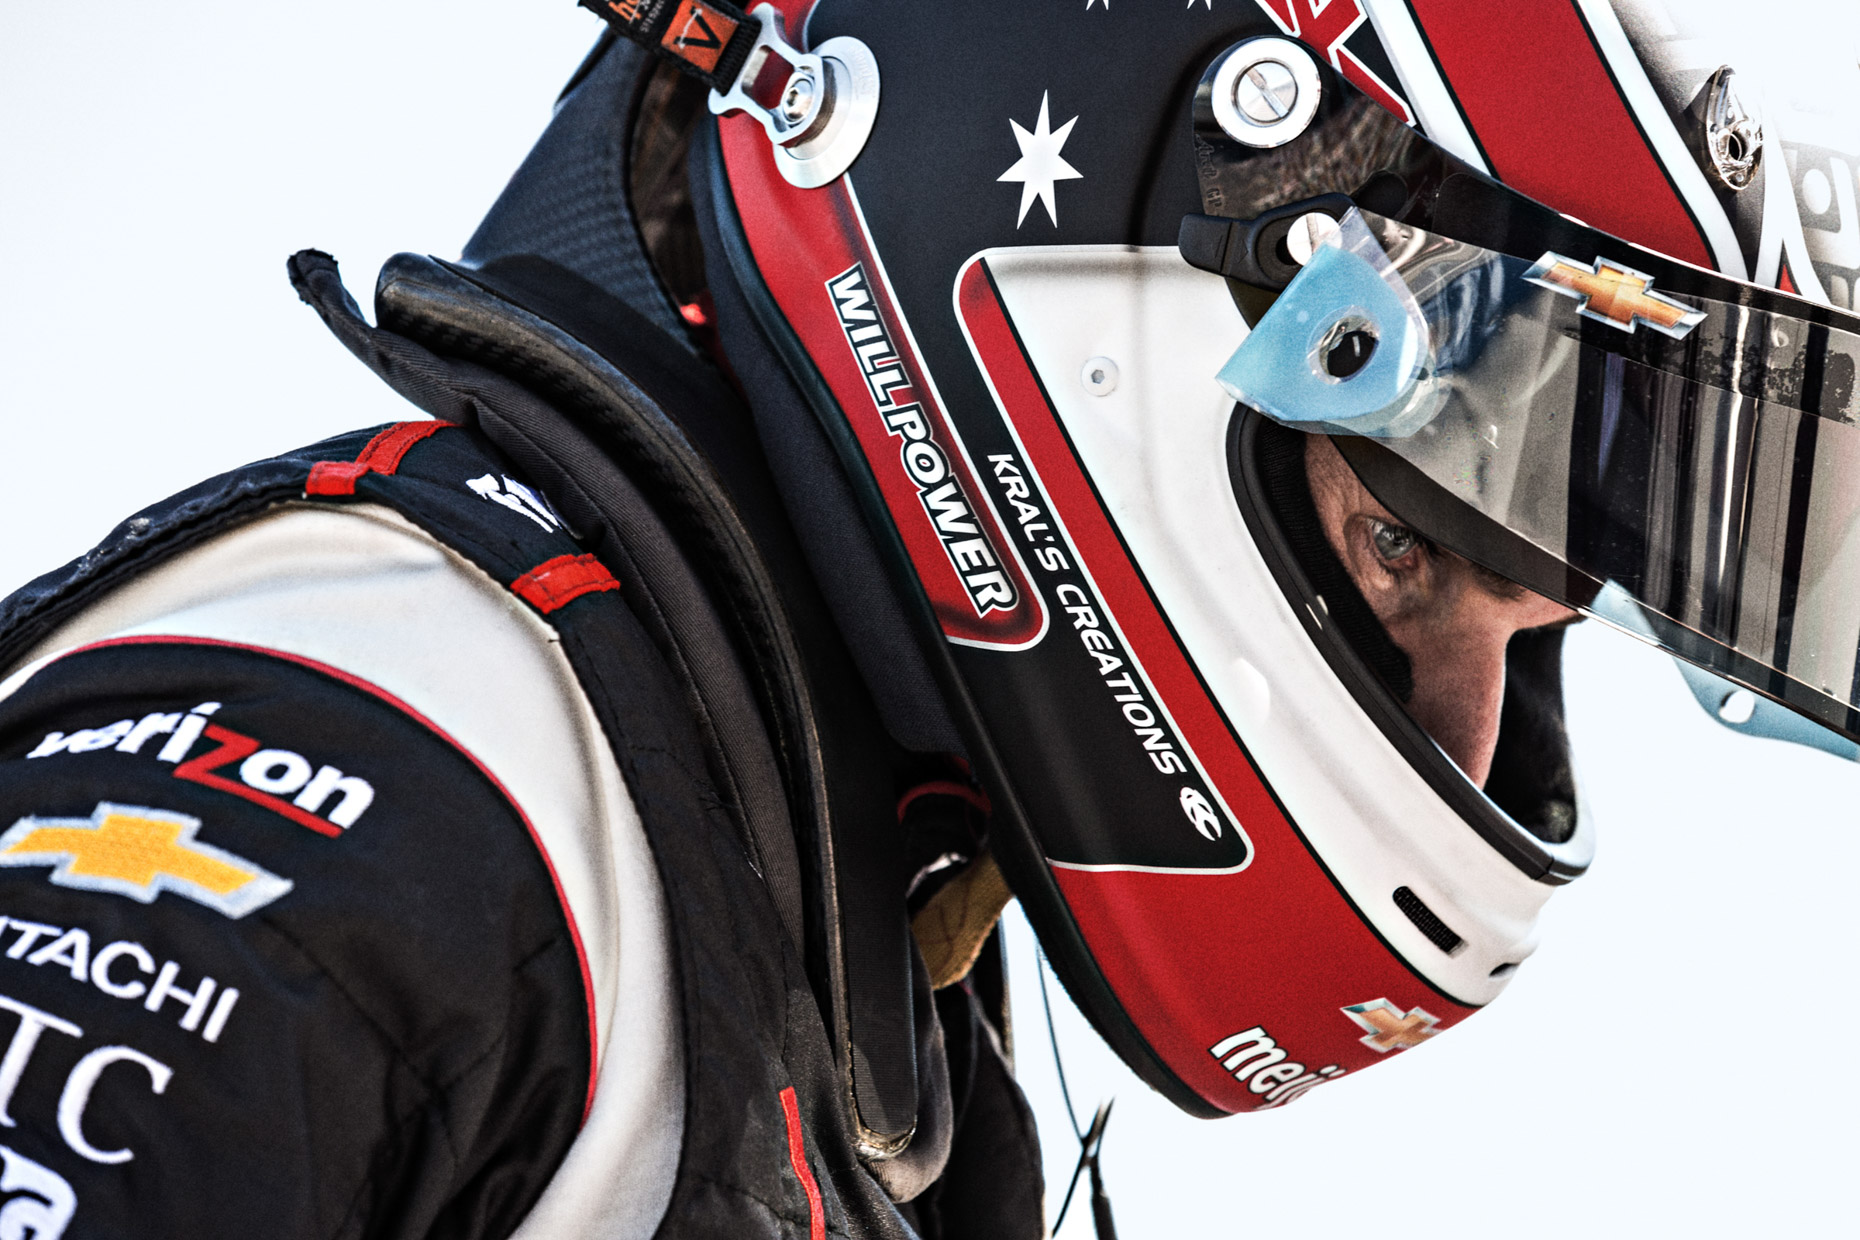 Indycar racer Will Power